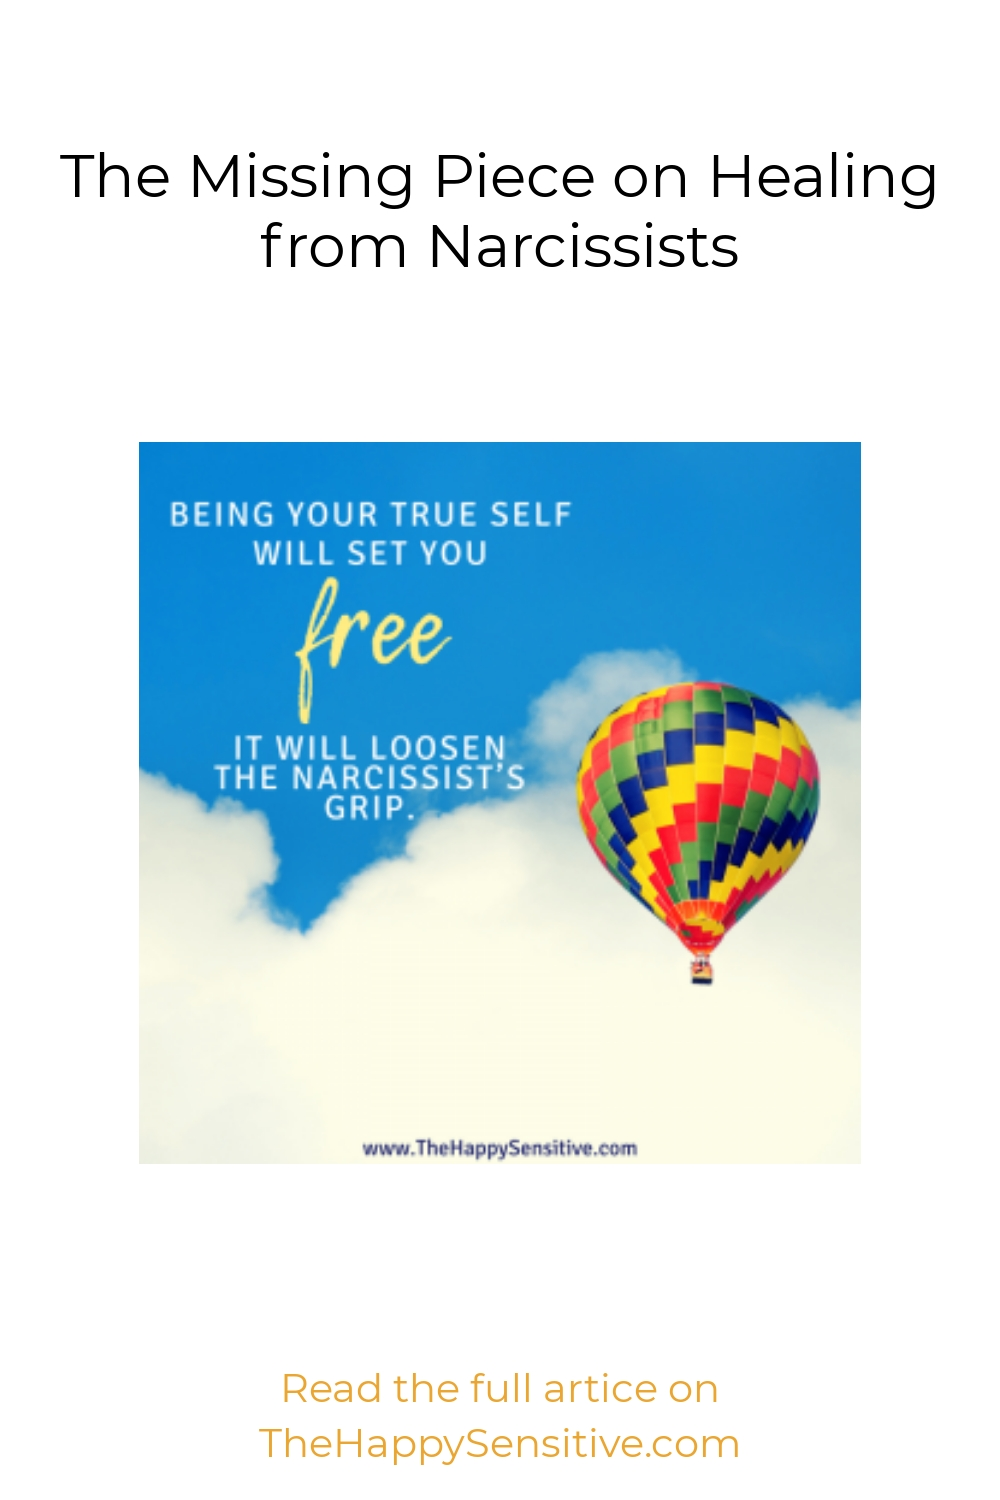 The Missing Piece on Healing from Narcissists